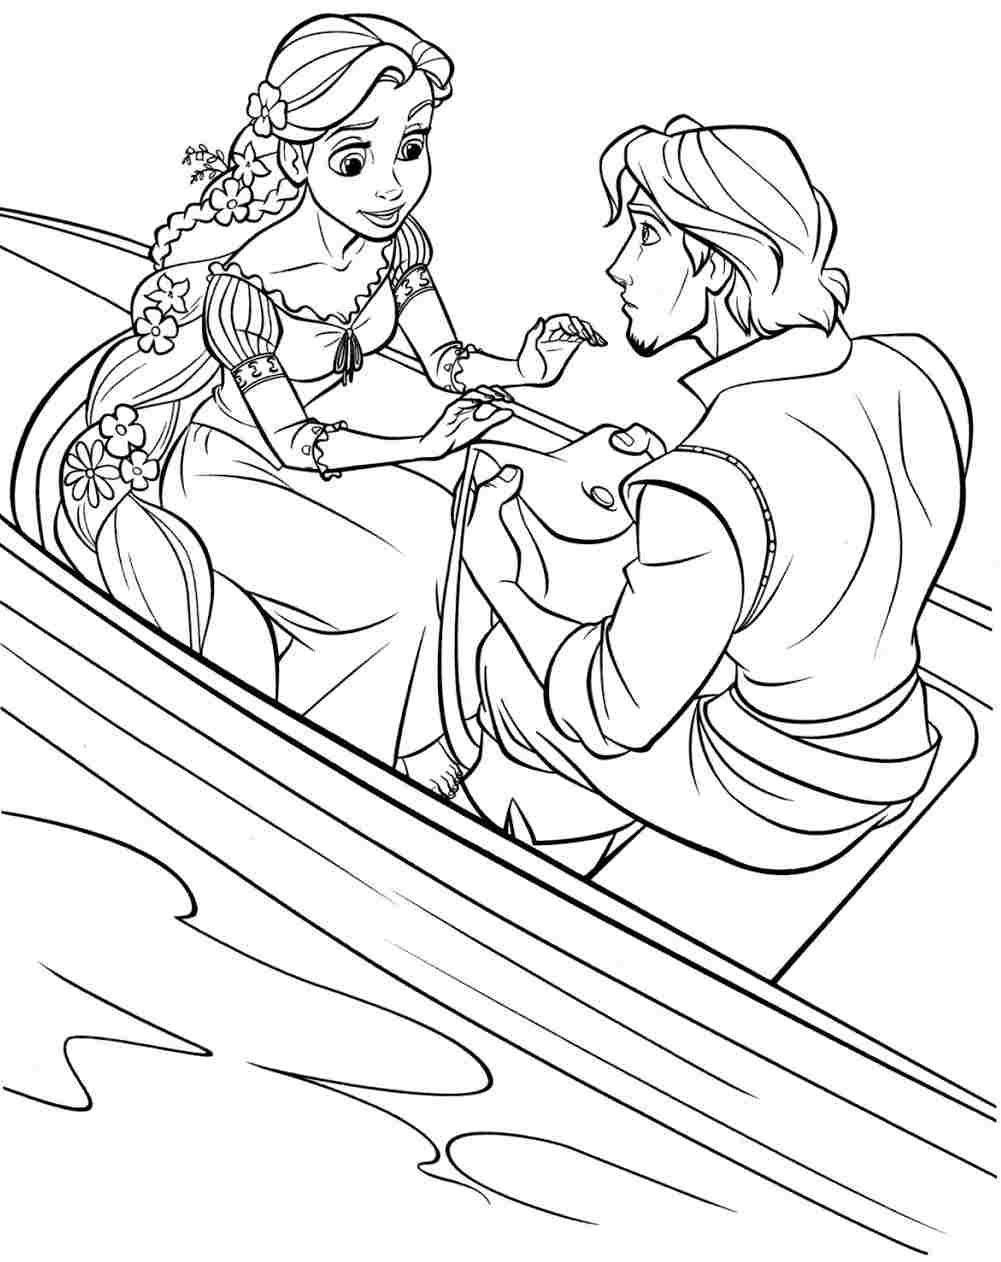 Disney Tangled Coloring Pages Printable Printable Free Disney Princess Tangled Rapunzel Rapunzel Coloring Pages Disney Coloring Pages Tangled Coloring Pages